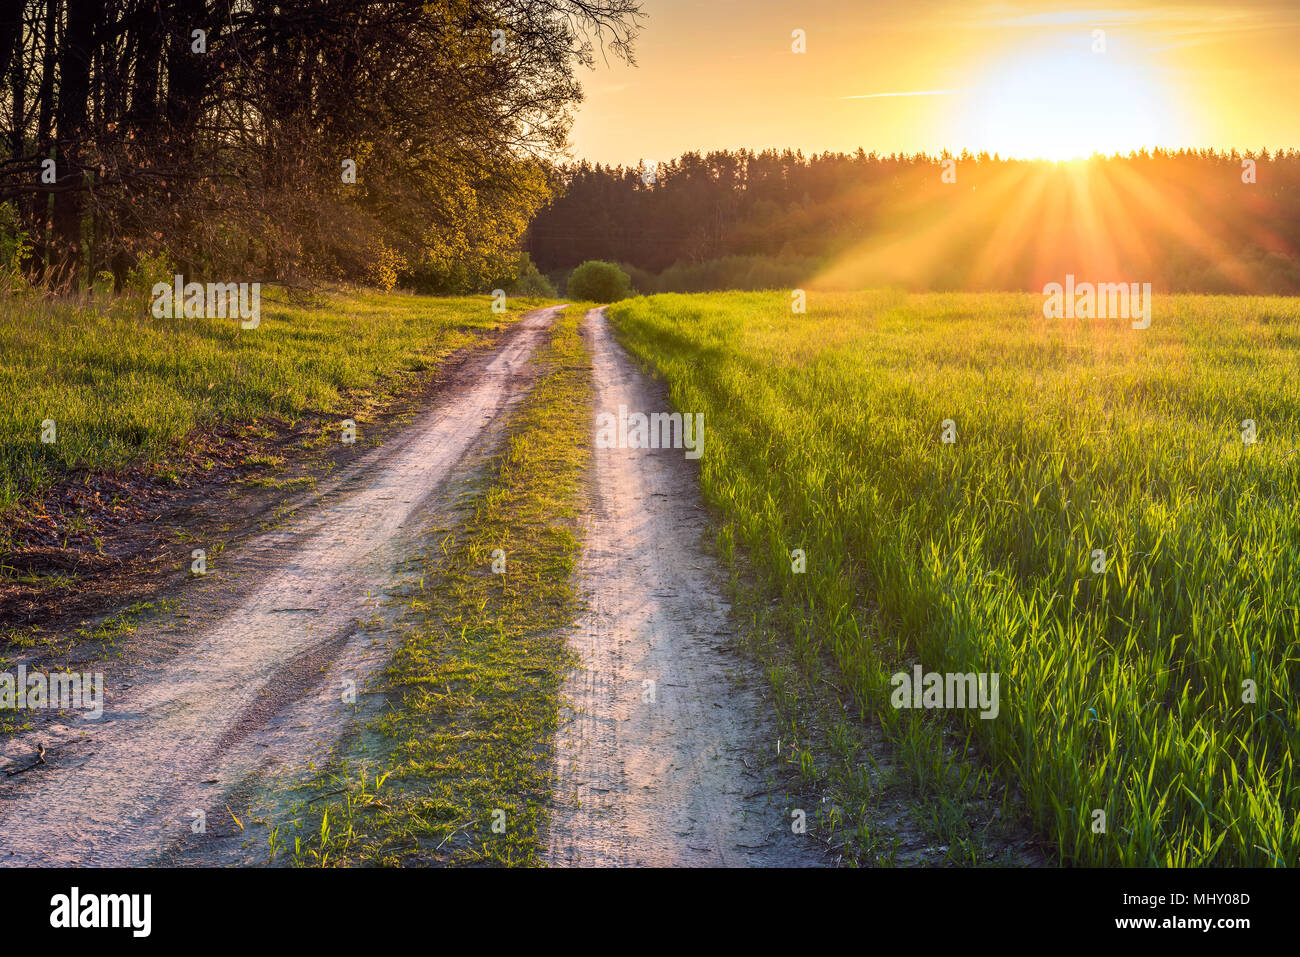 Dawn in the spring wheat field in the Kyiv region, Ukraine. The road is along the May field. - Stock Image